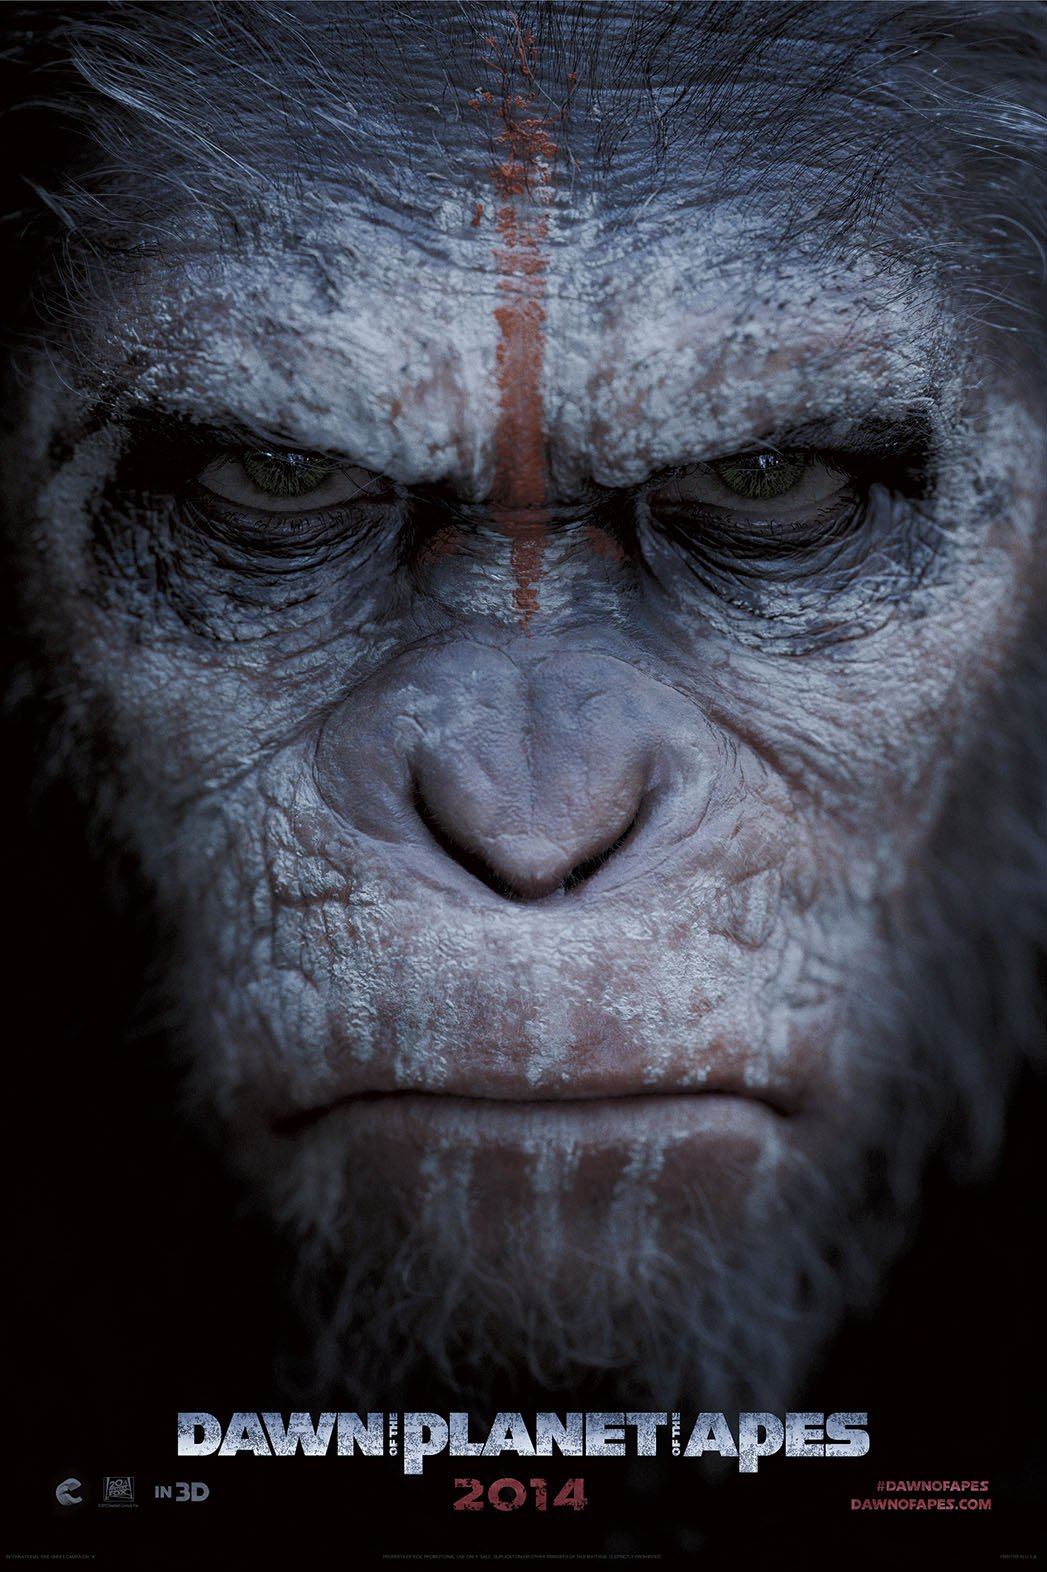 Enter the Dawn of the Planet of the Apes with Official Poster Scroll Enter the Dawn of the Planet of the Apes with Official Poster